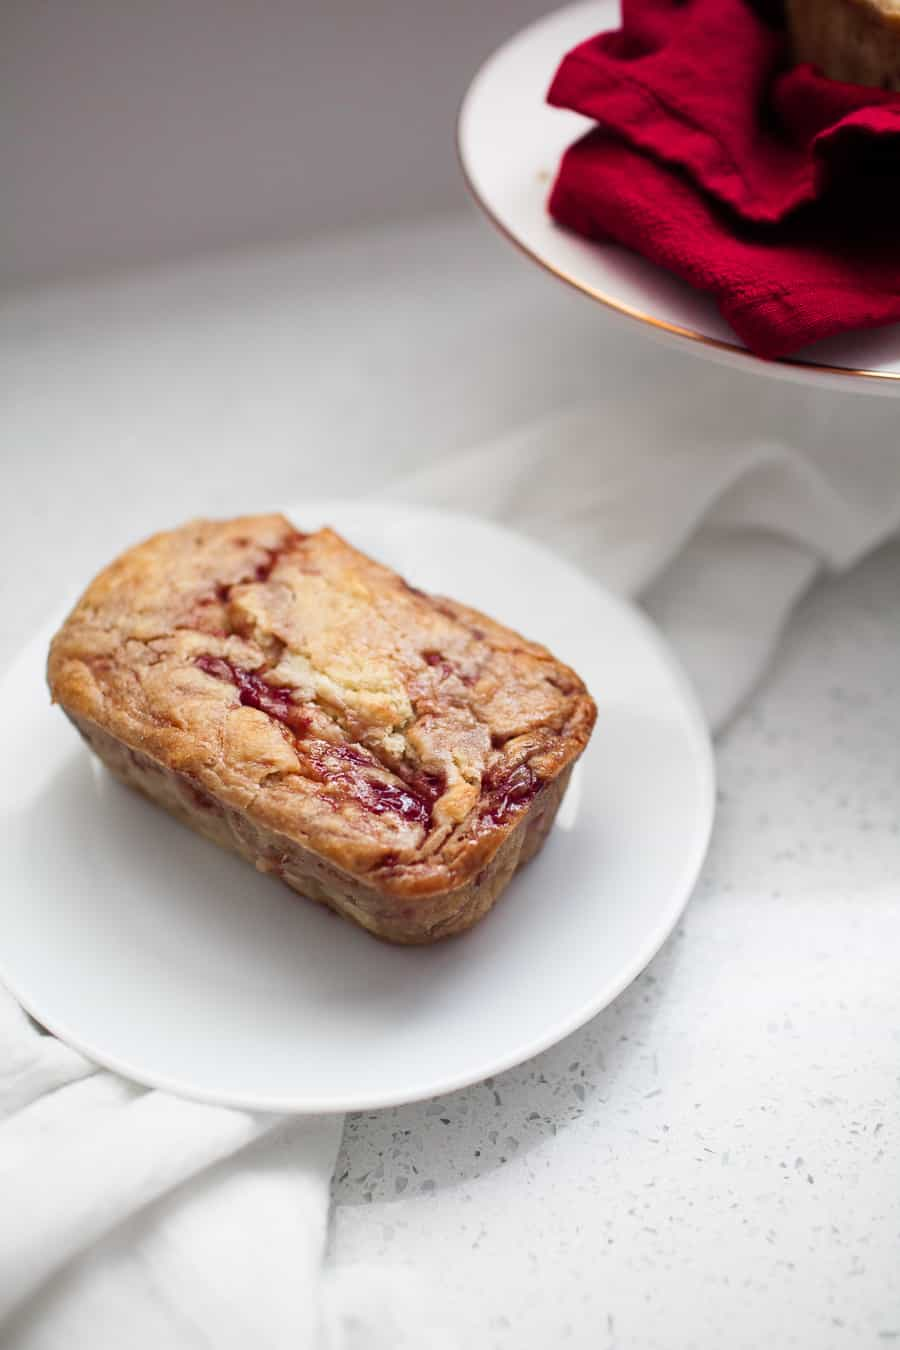 This strawberry jam quick bread is a special treat that the whole family can enjoy! Made with honey sweetened jam, it?s the perfect little indulgence. Make mini loaves and give them as gifts!